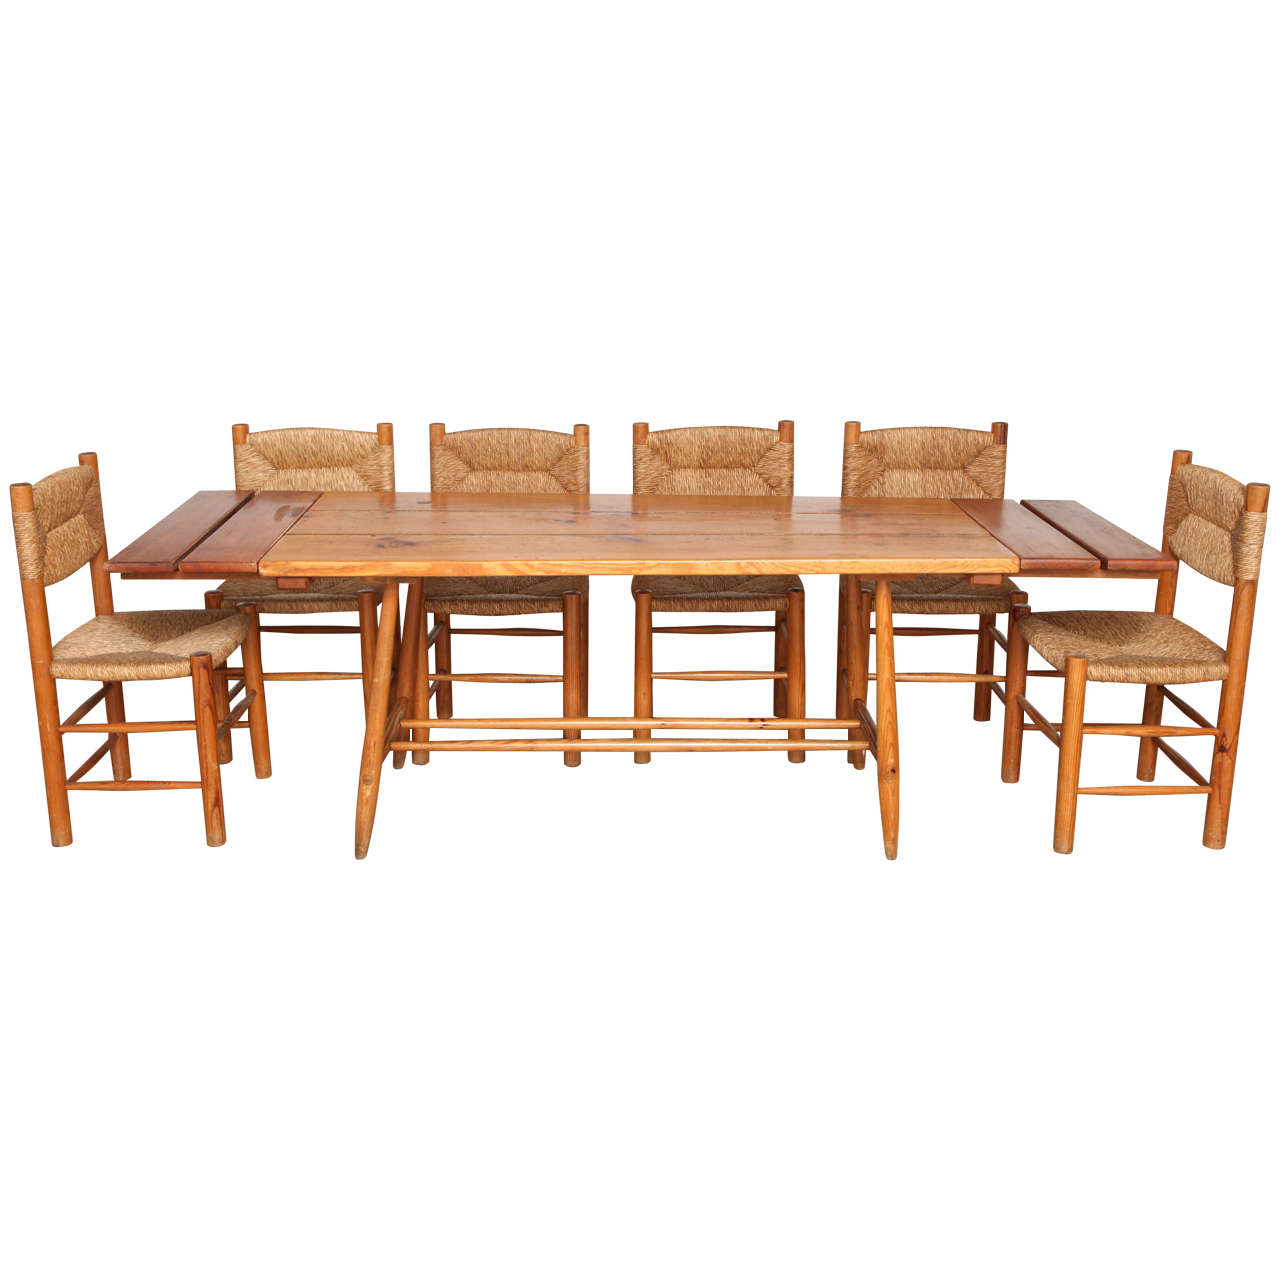 charlotte perriand table and six chairs for sale at 1stdibs